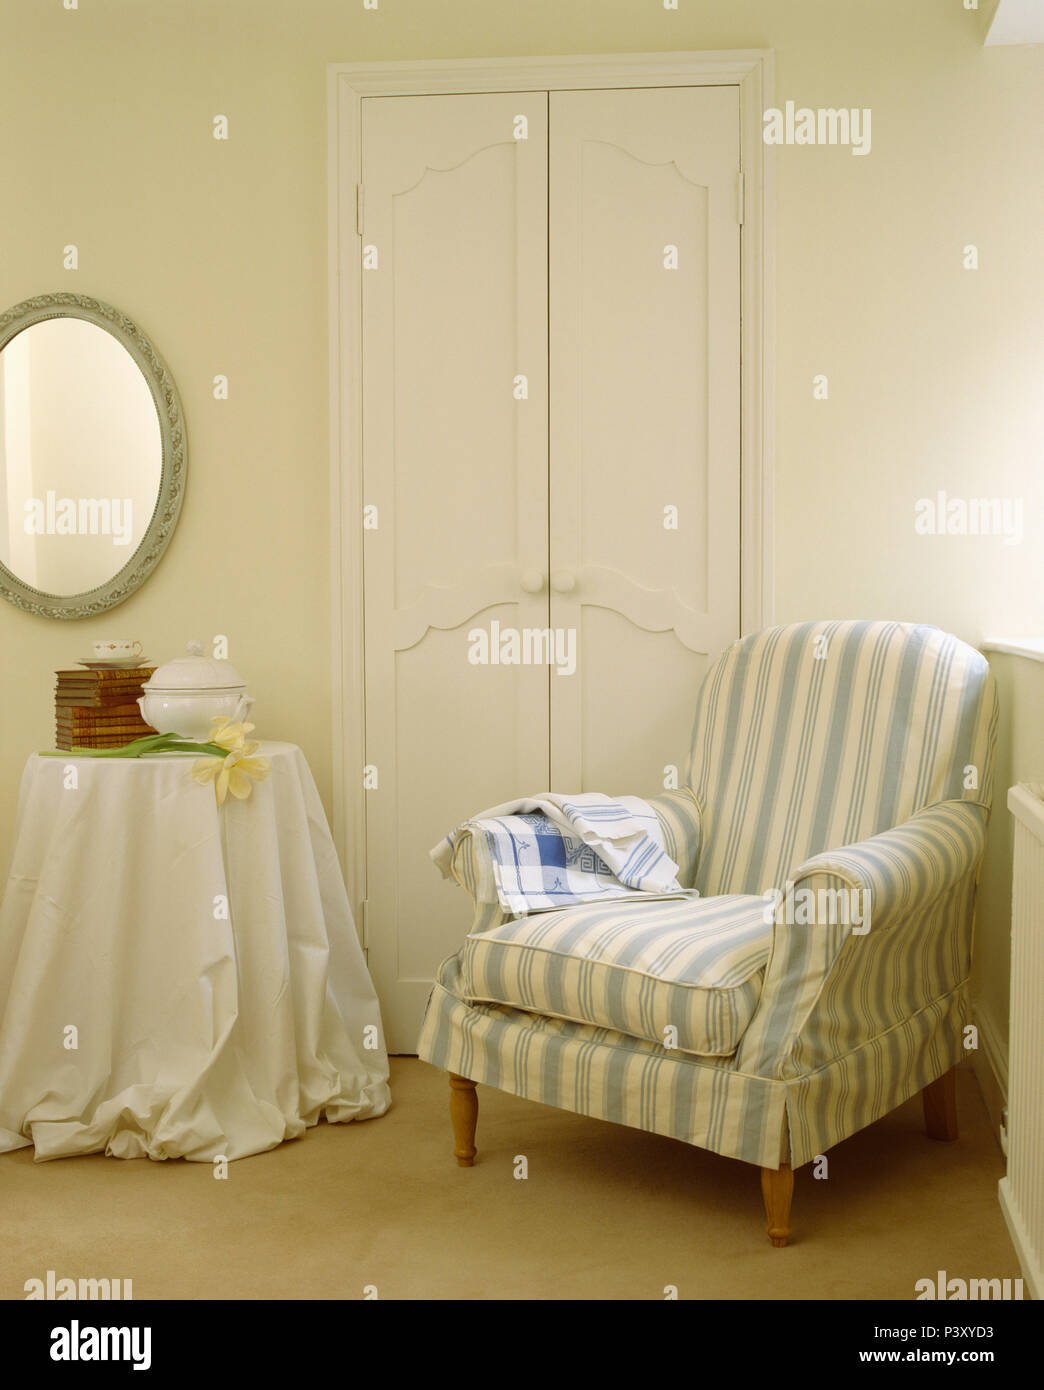 Blue White Striped Loose Cover On Armchair In Corner Of Dining Room With White Cloth On Small Side Table Stock Photo Alamy